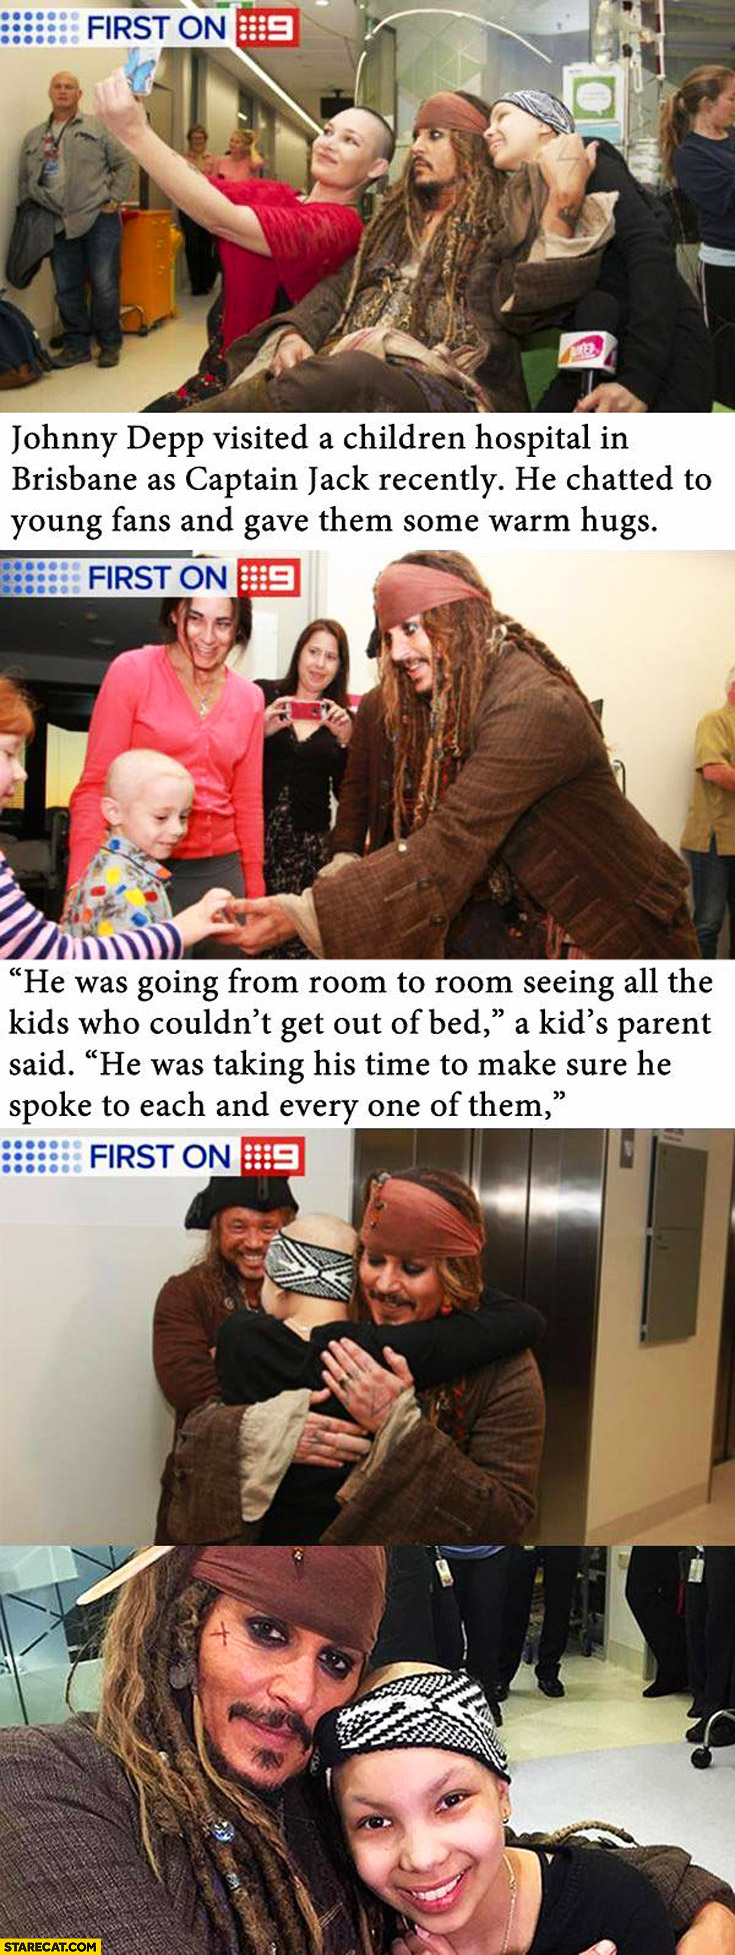 Johnny Depp as Jack Sparrow in children hospital in Brisbane